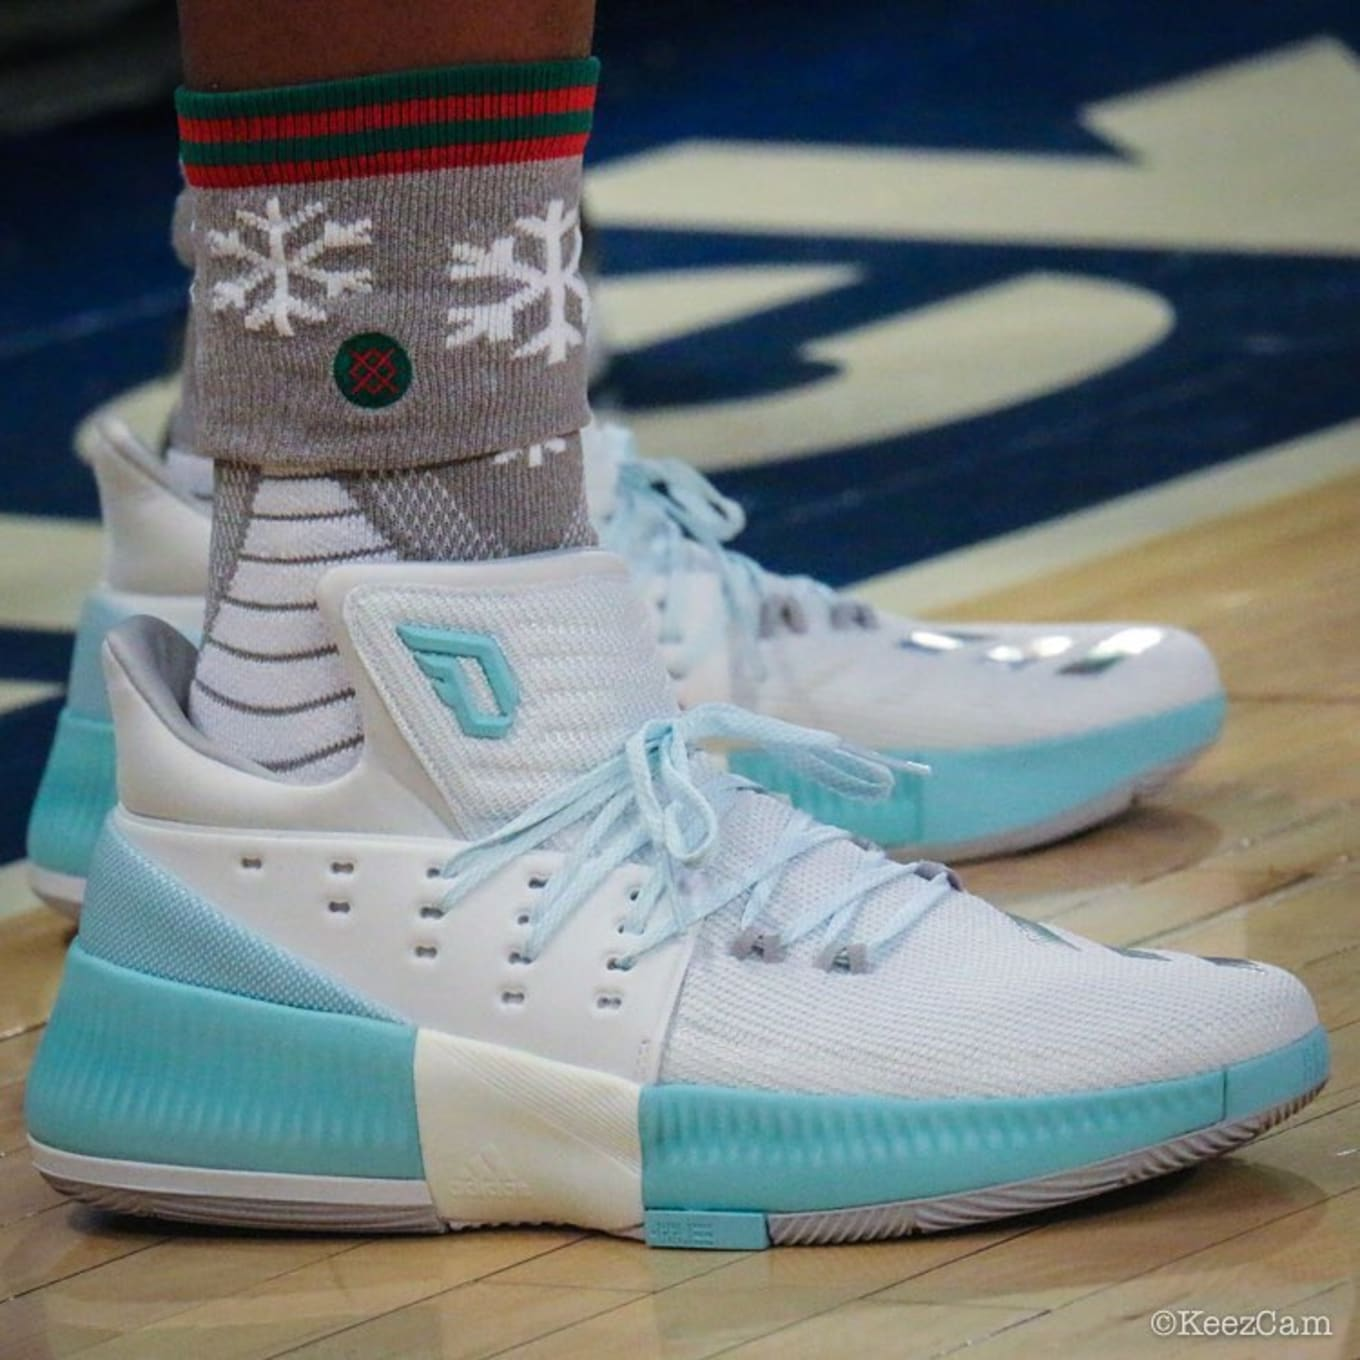 Derrick Rose Christmas Shoes 2016.Nba Christmas Sneakers 2016 Sole Collector